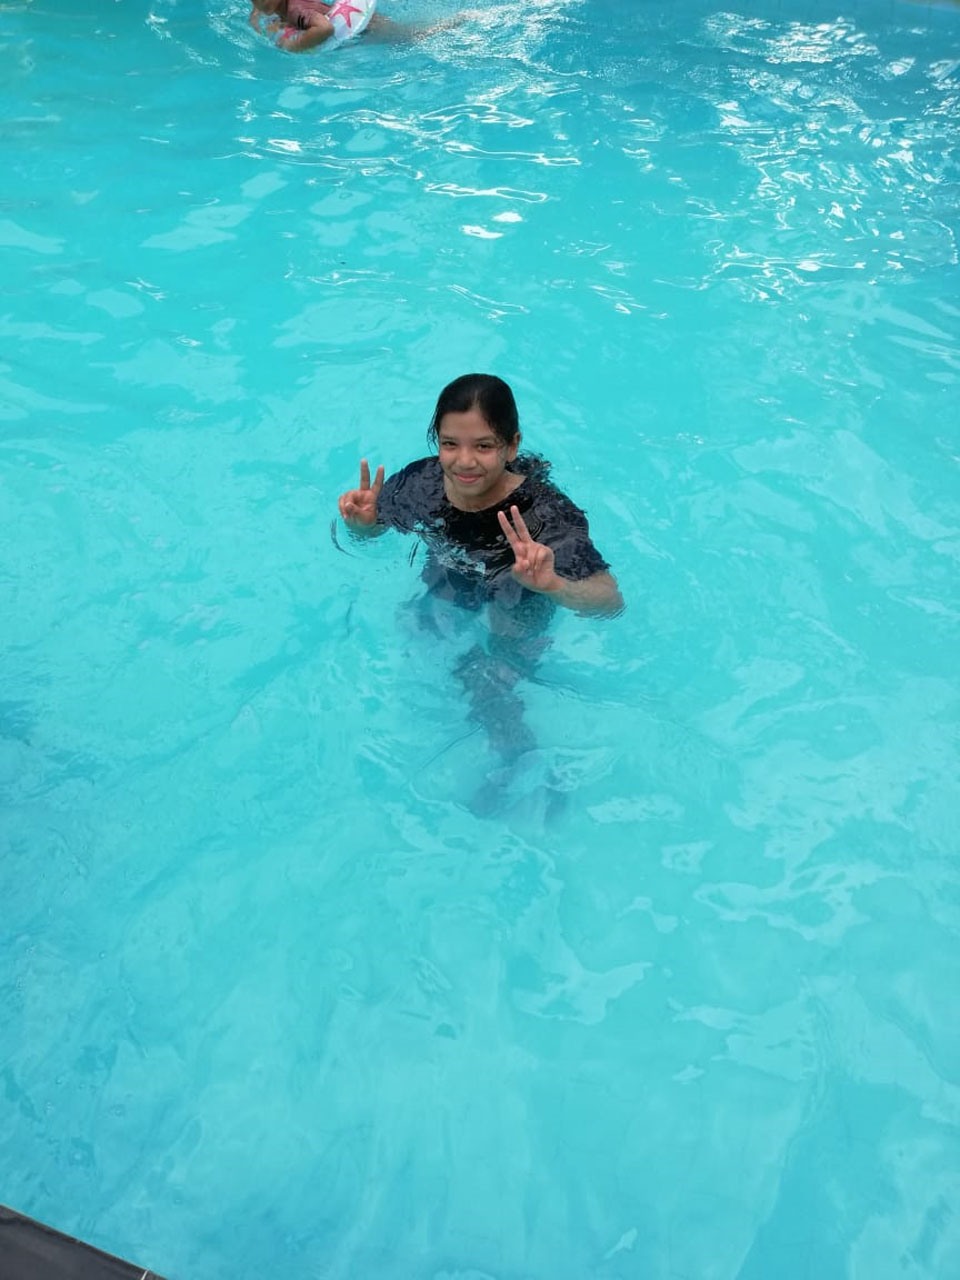 Zoya Imran enjoying inside the swimming pool